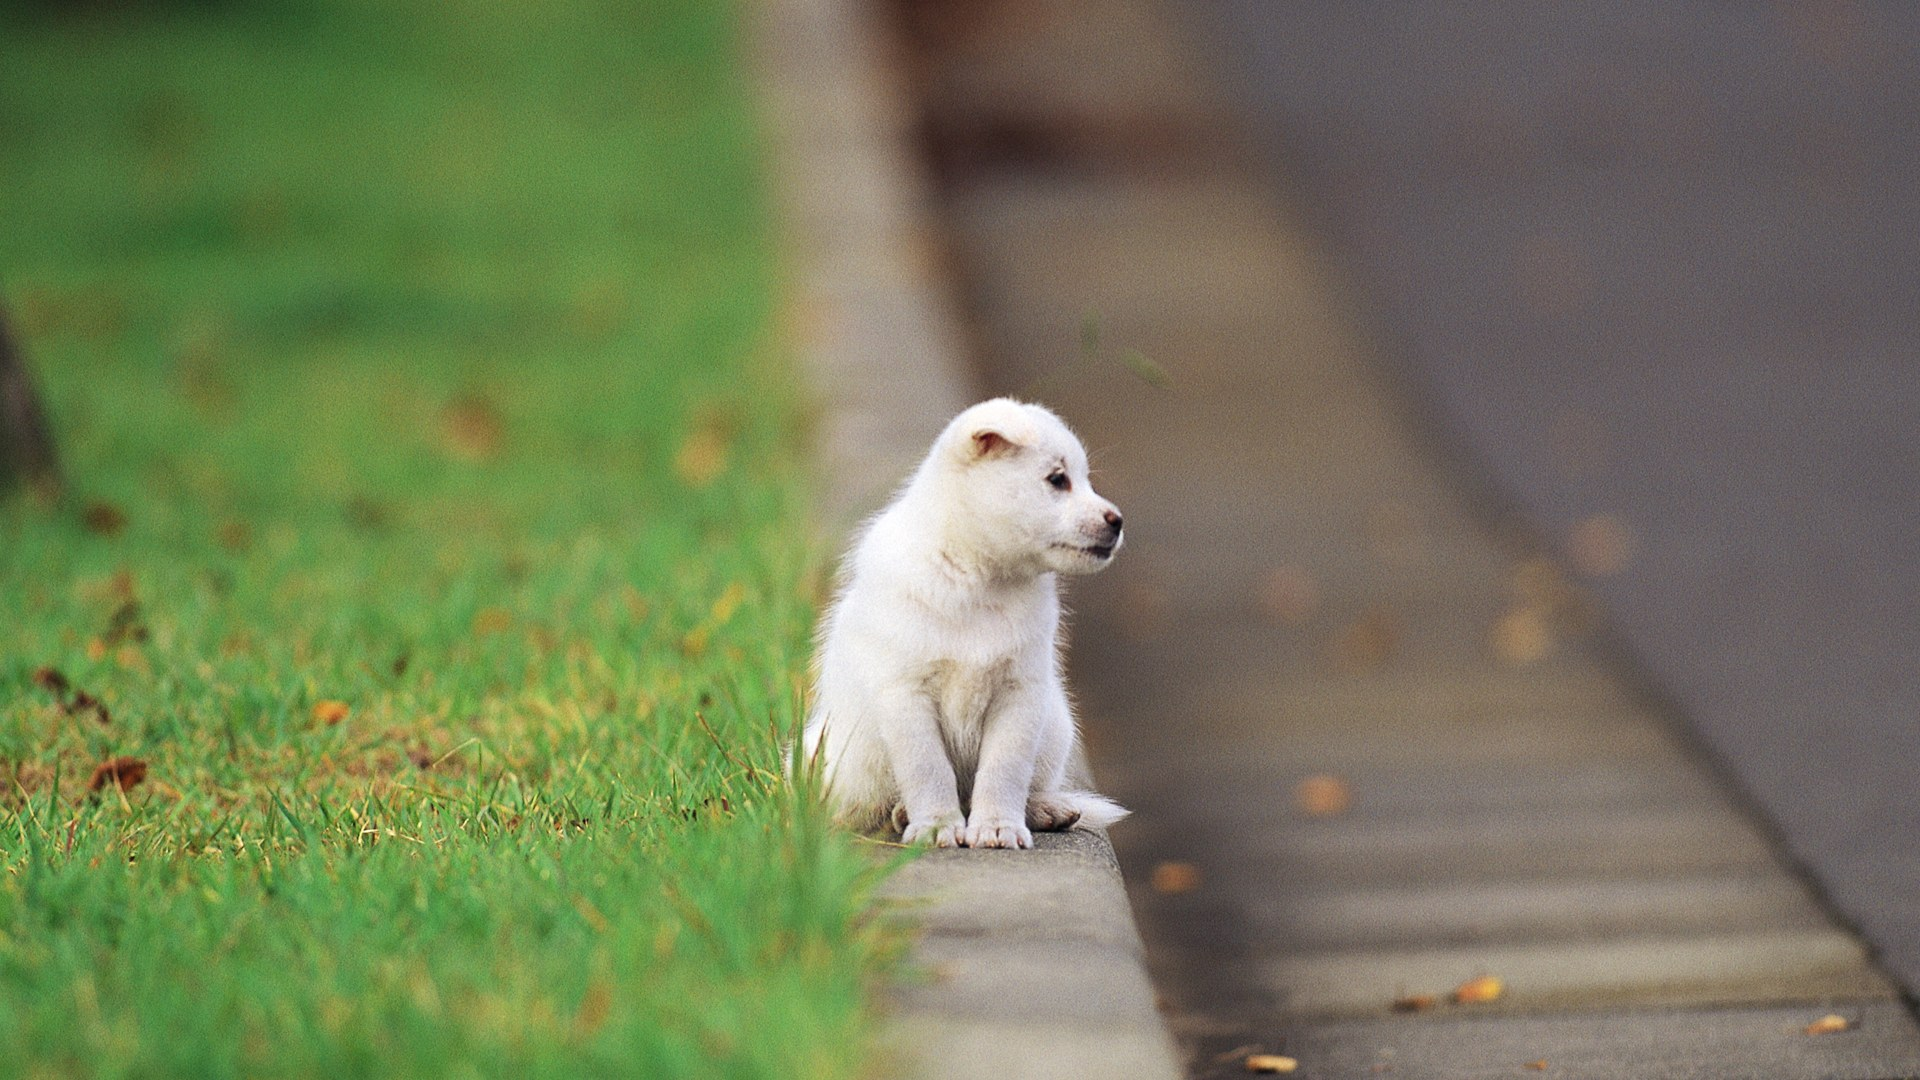 puppy free wallpaper - wallpaper, high definition, high quality